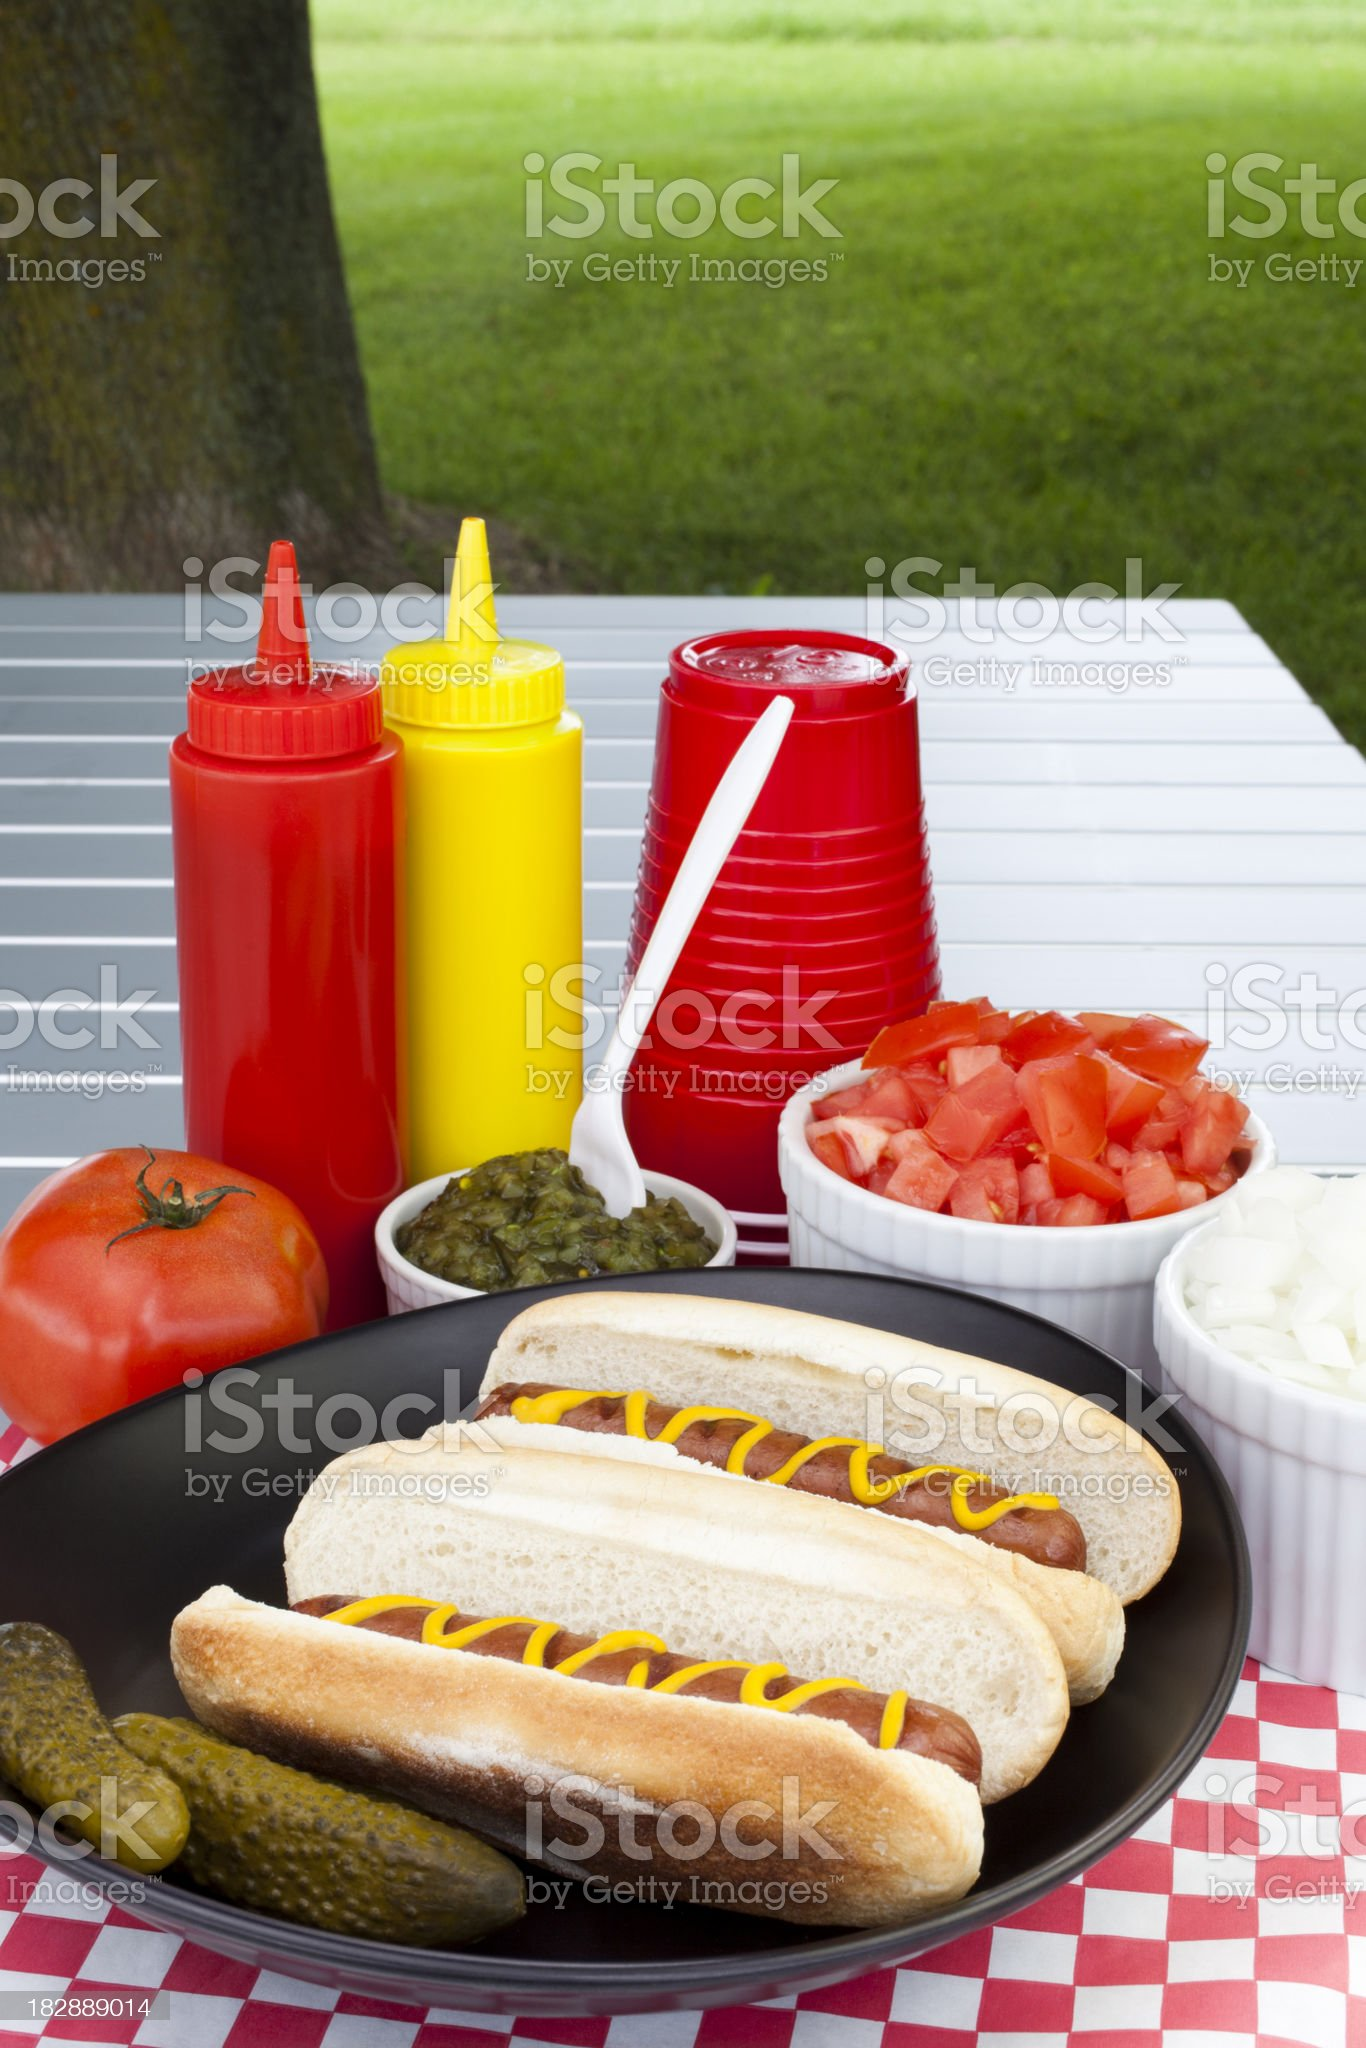 Hot Dogs and Condiments royalty-free stock photo